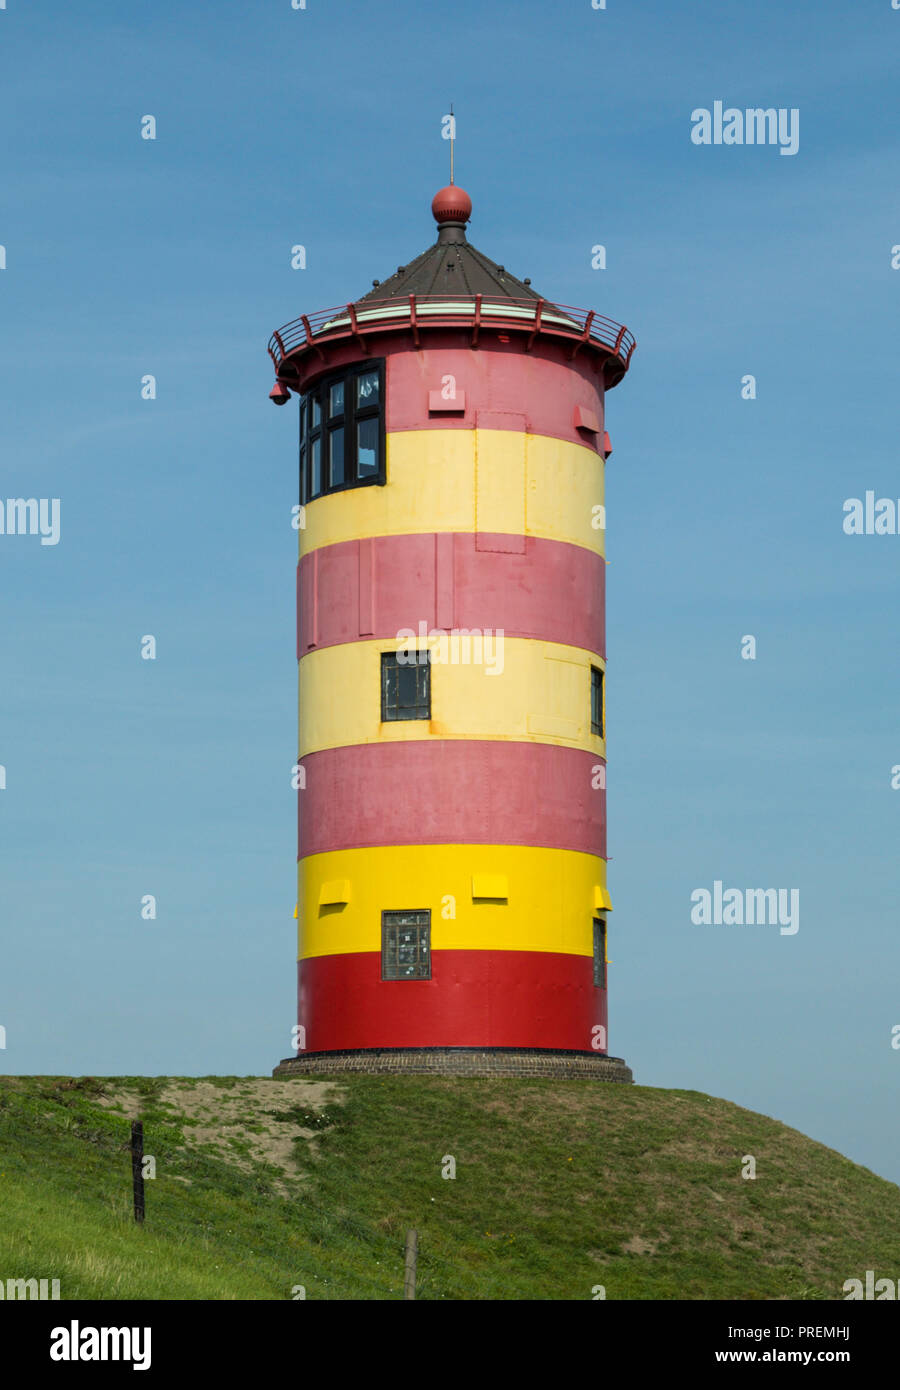 Famous small lighthouse of Pilsum, East Frisia, German North Sea region - Stock Image